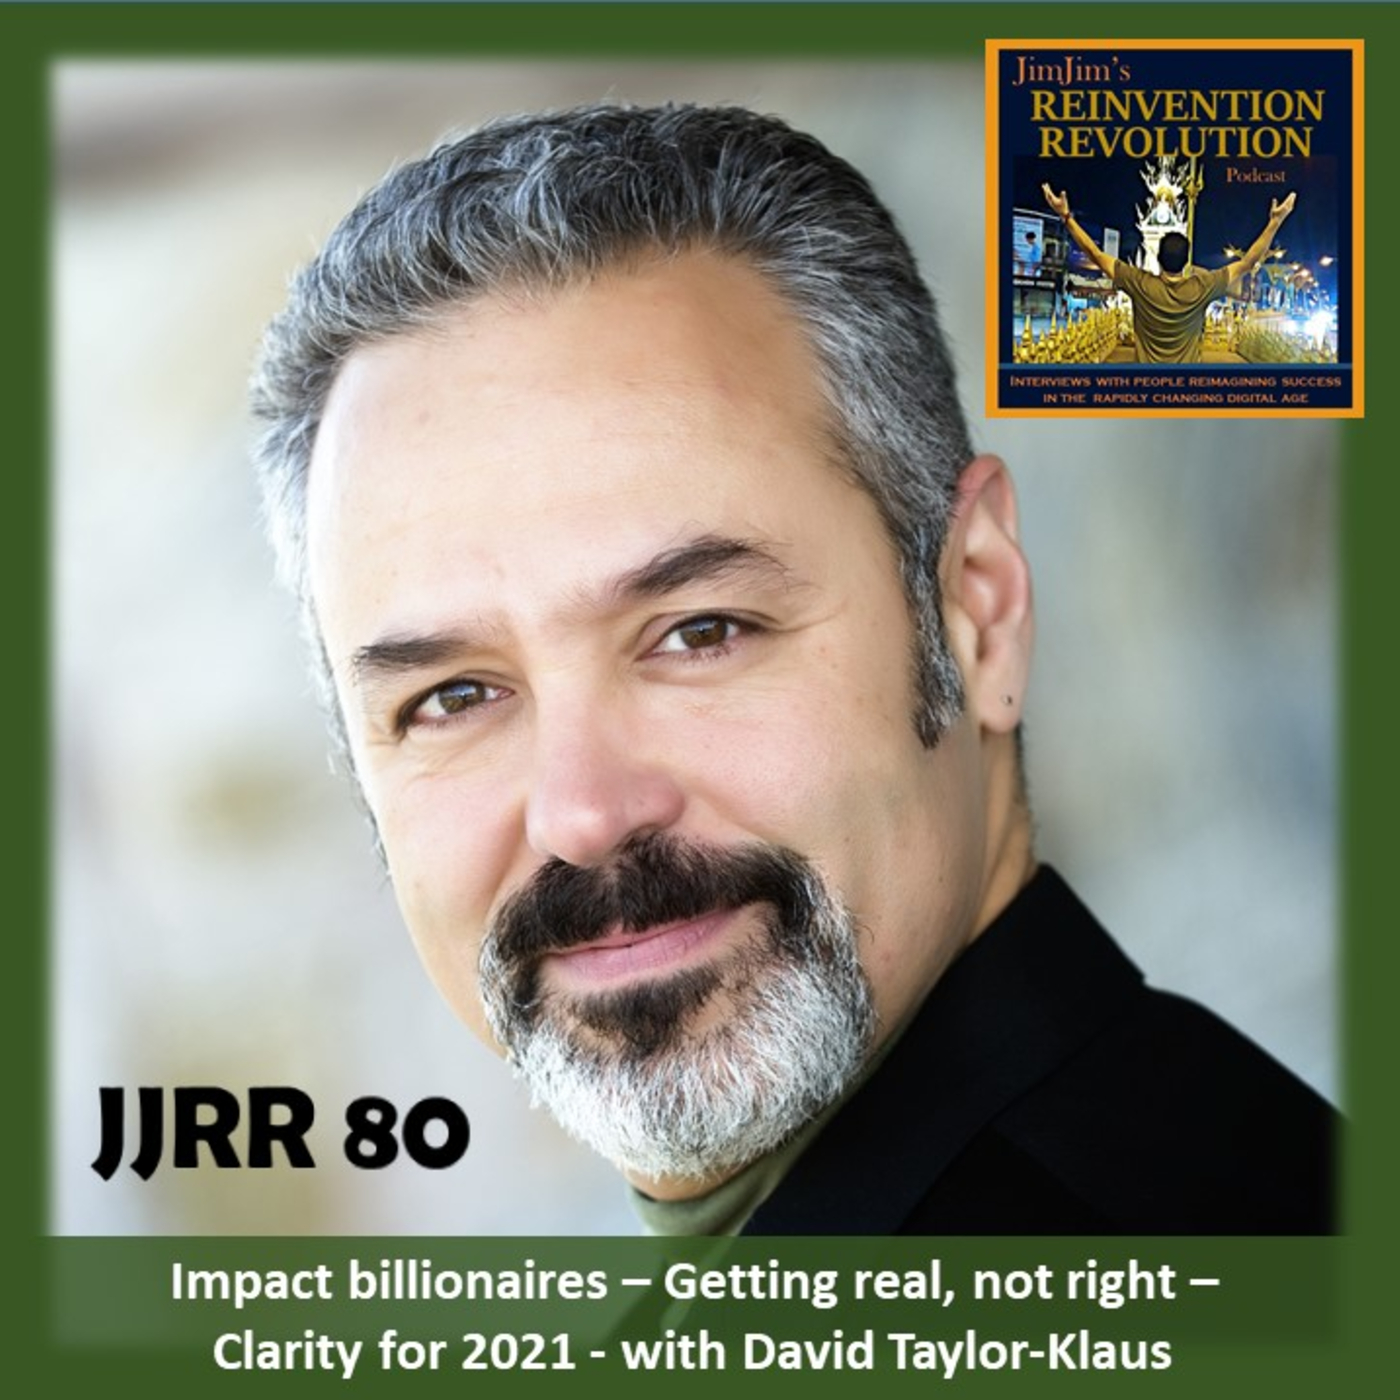 JJRR 80 Impact billionaires – Getting real, not right – Clarity for 2021 – with David Taylor-Klaus